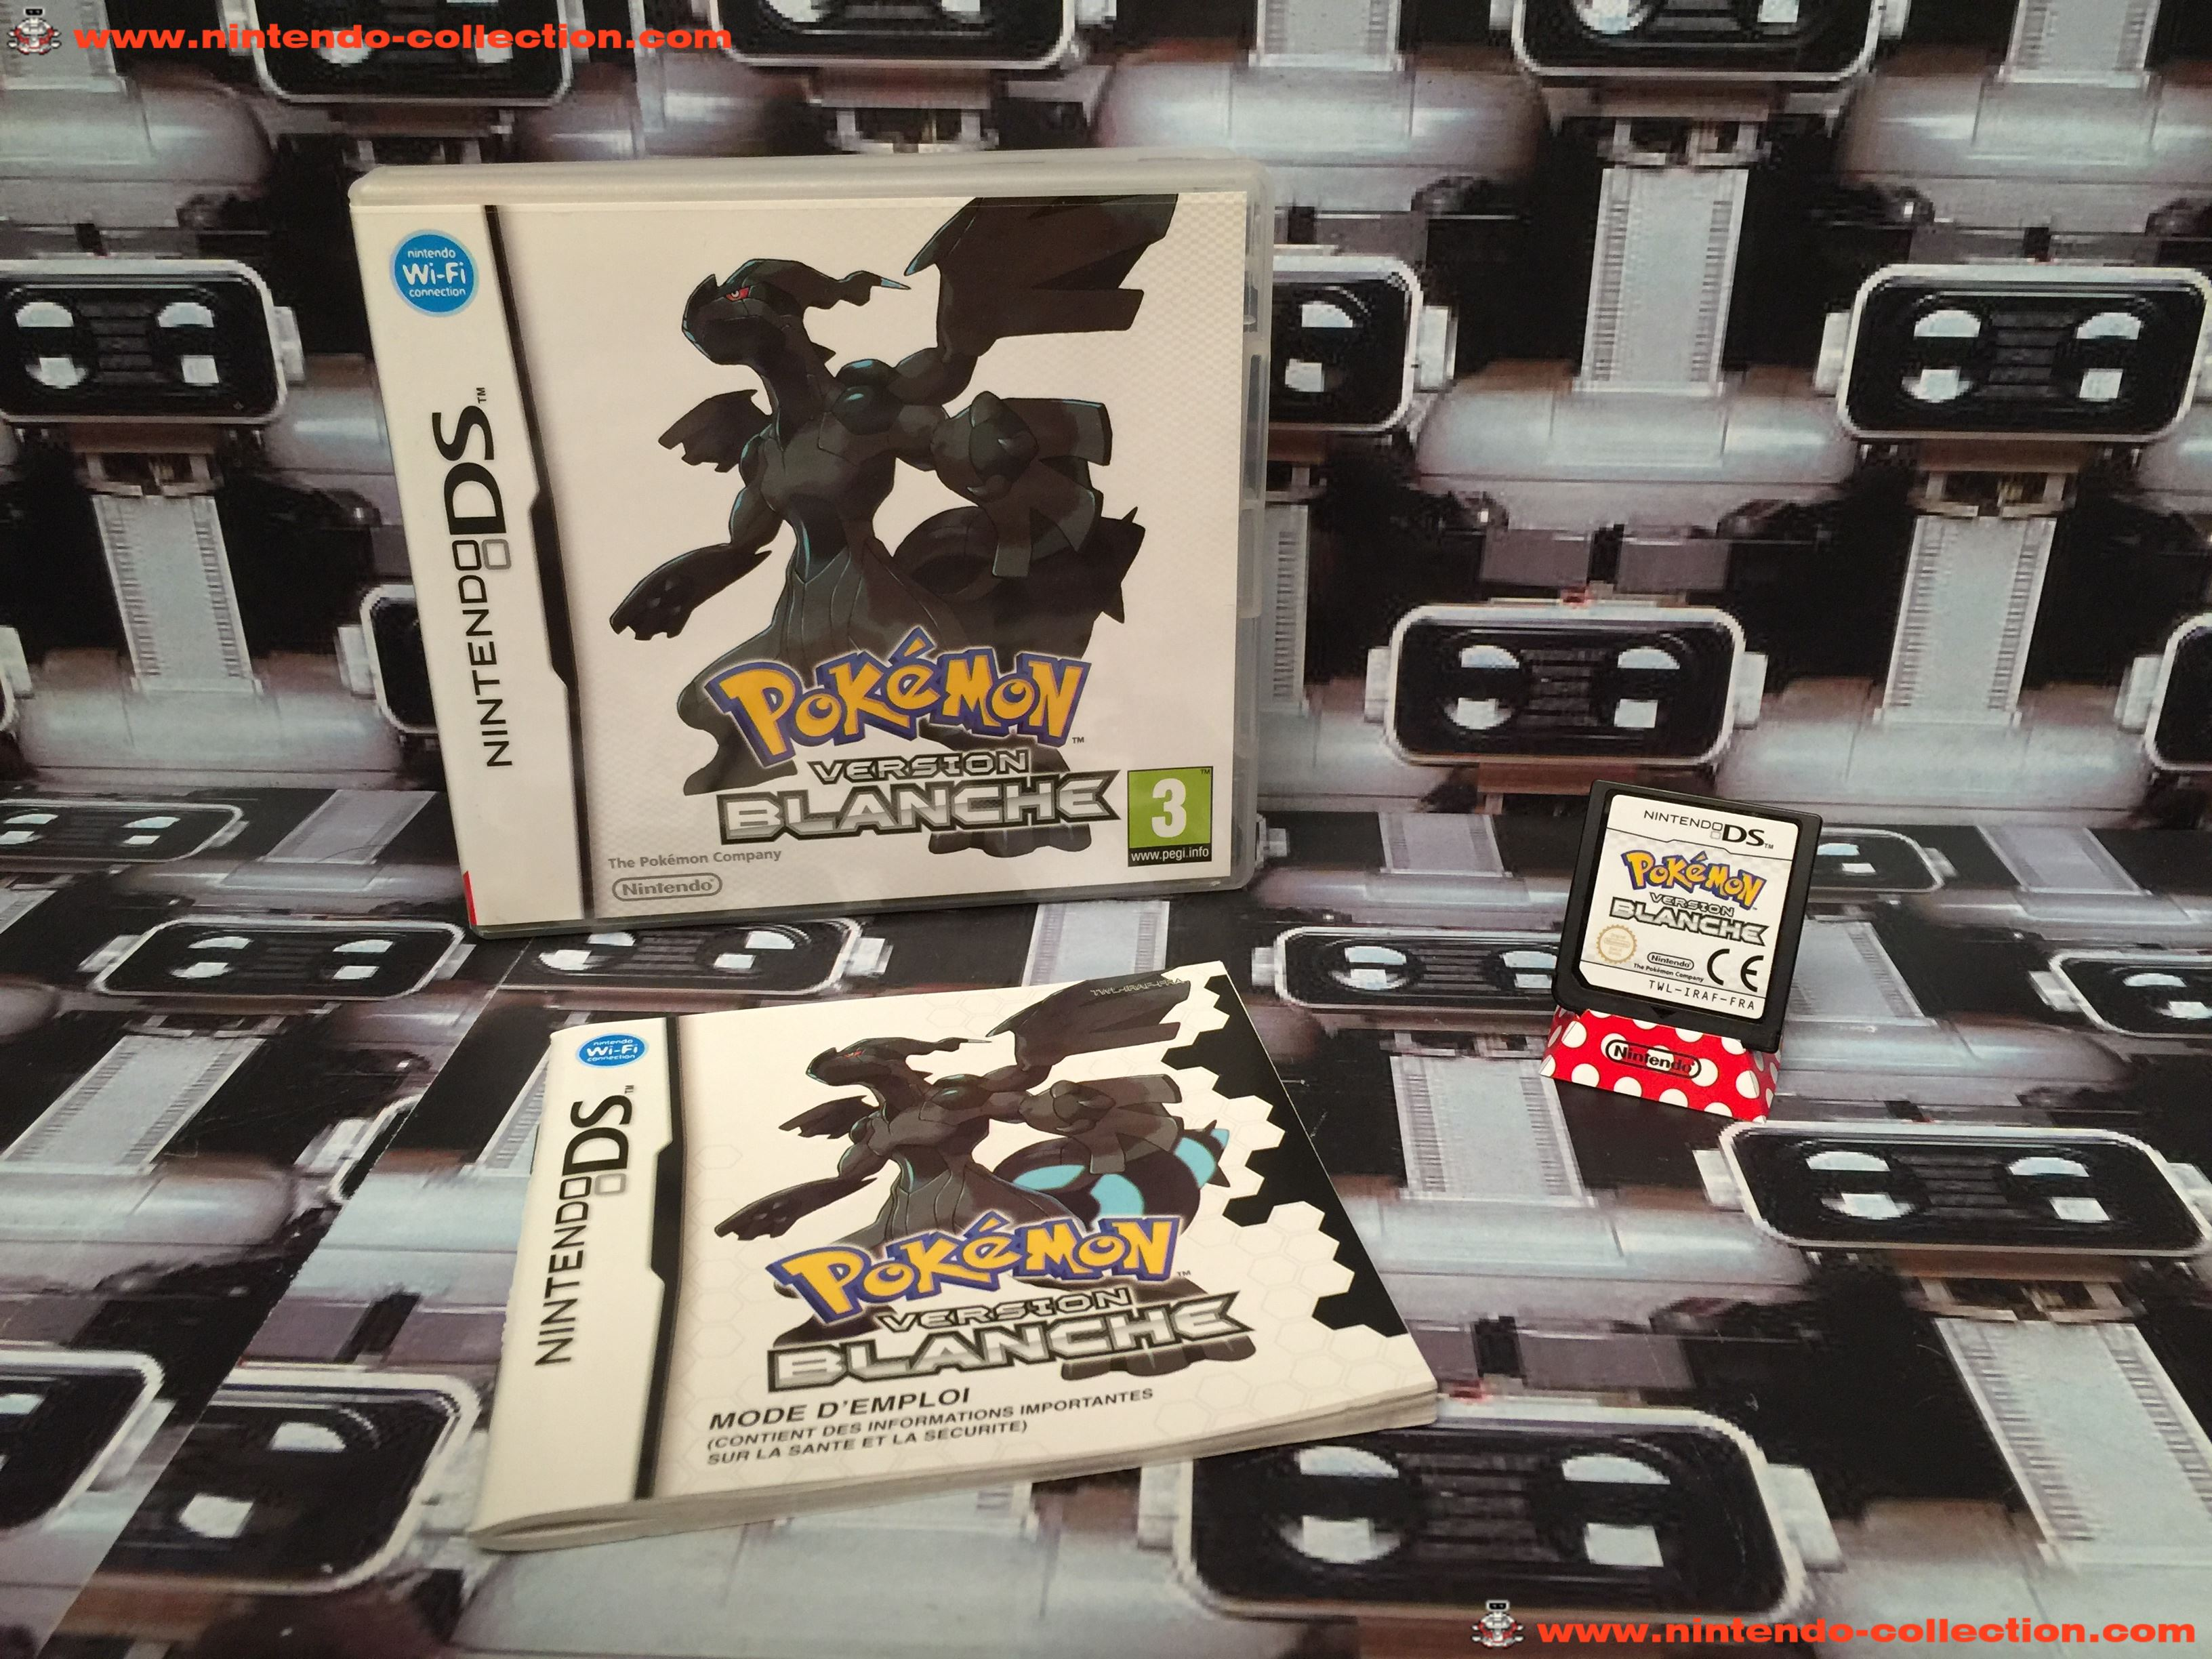 www.nintendo-collection.com - Nintendo DS Jeux Game Pokemon Version Blanche Euro Fr